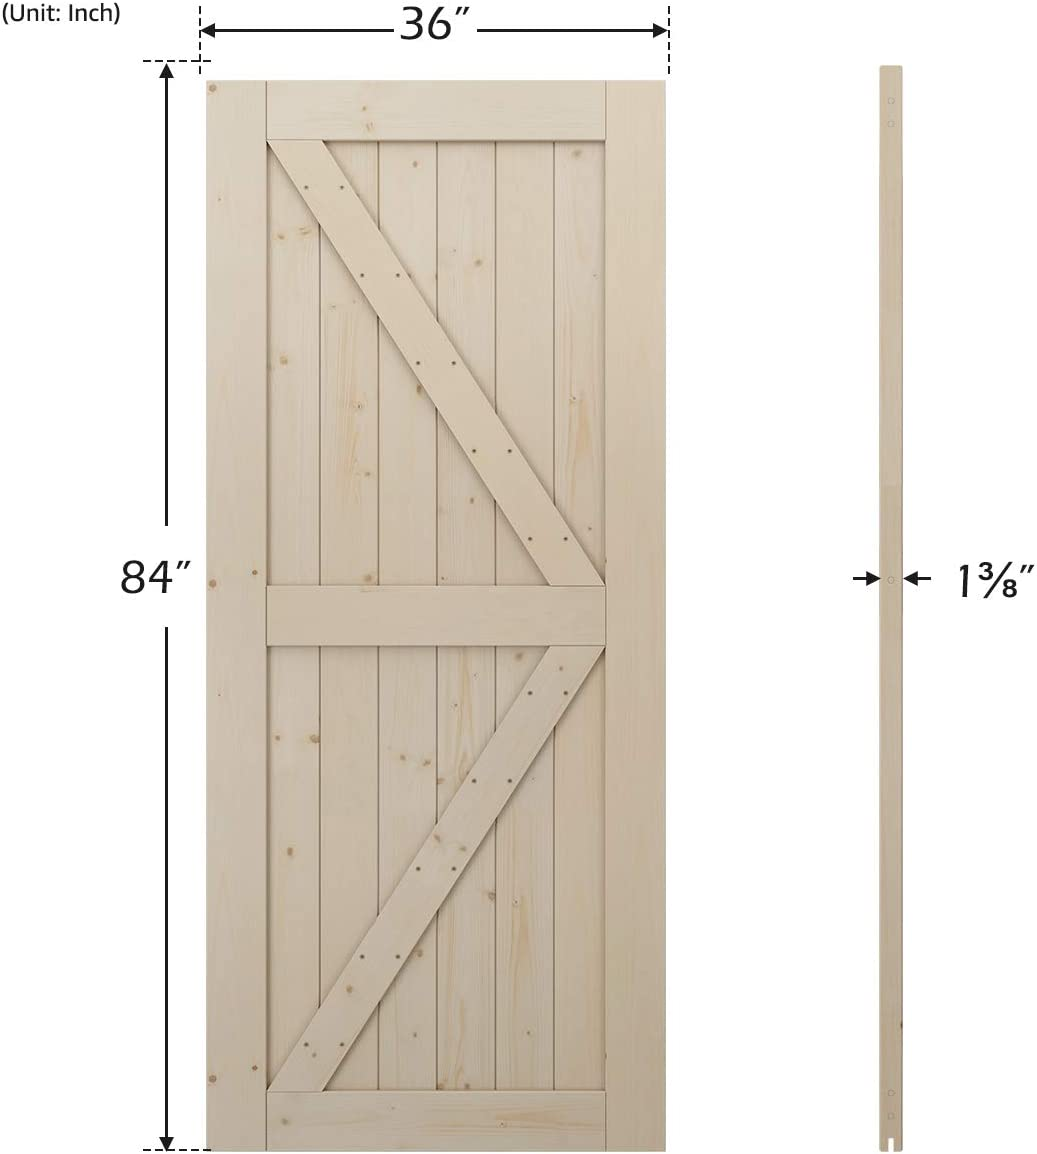 Solid Nature Wood LD Build 36in x 84in Sliding Barn Wood Door Slab with Barn Door Handle Set and Bottom Floor Guide Easy Installation,K-Frame Fit 6-6.6FT Track DIY Unfinished Panel Environmental